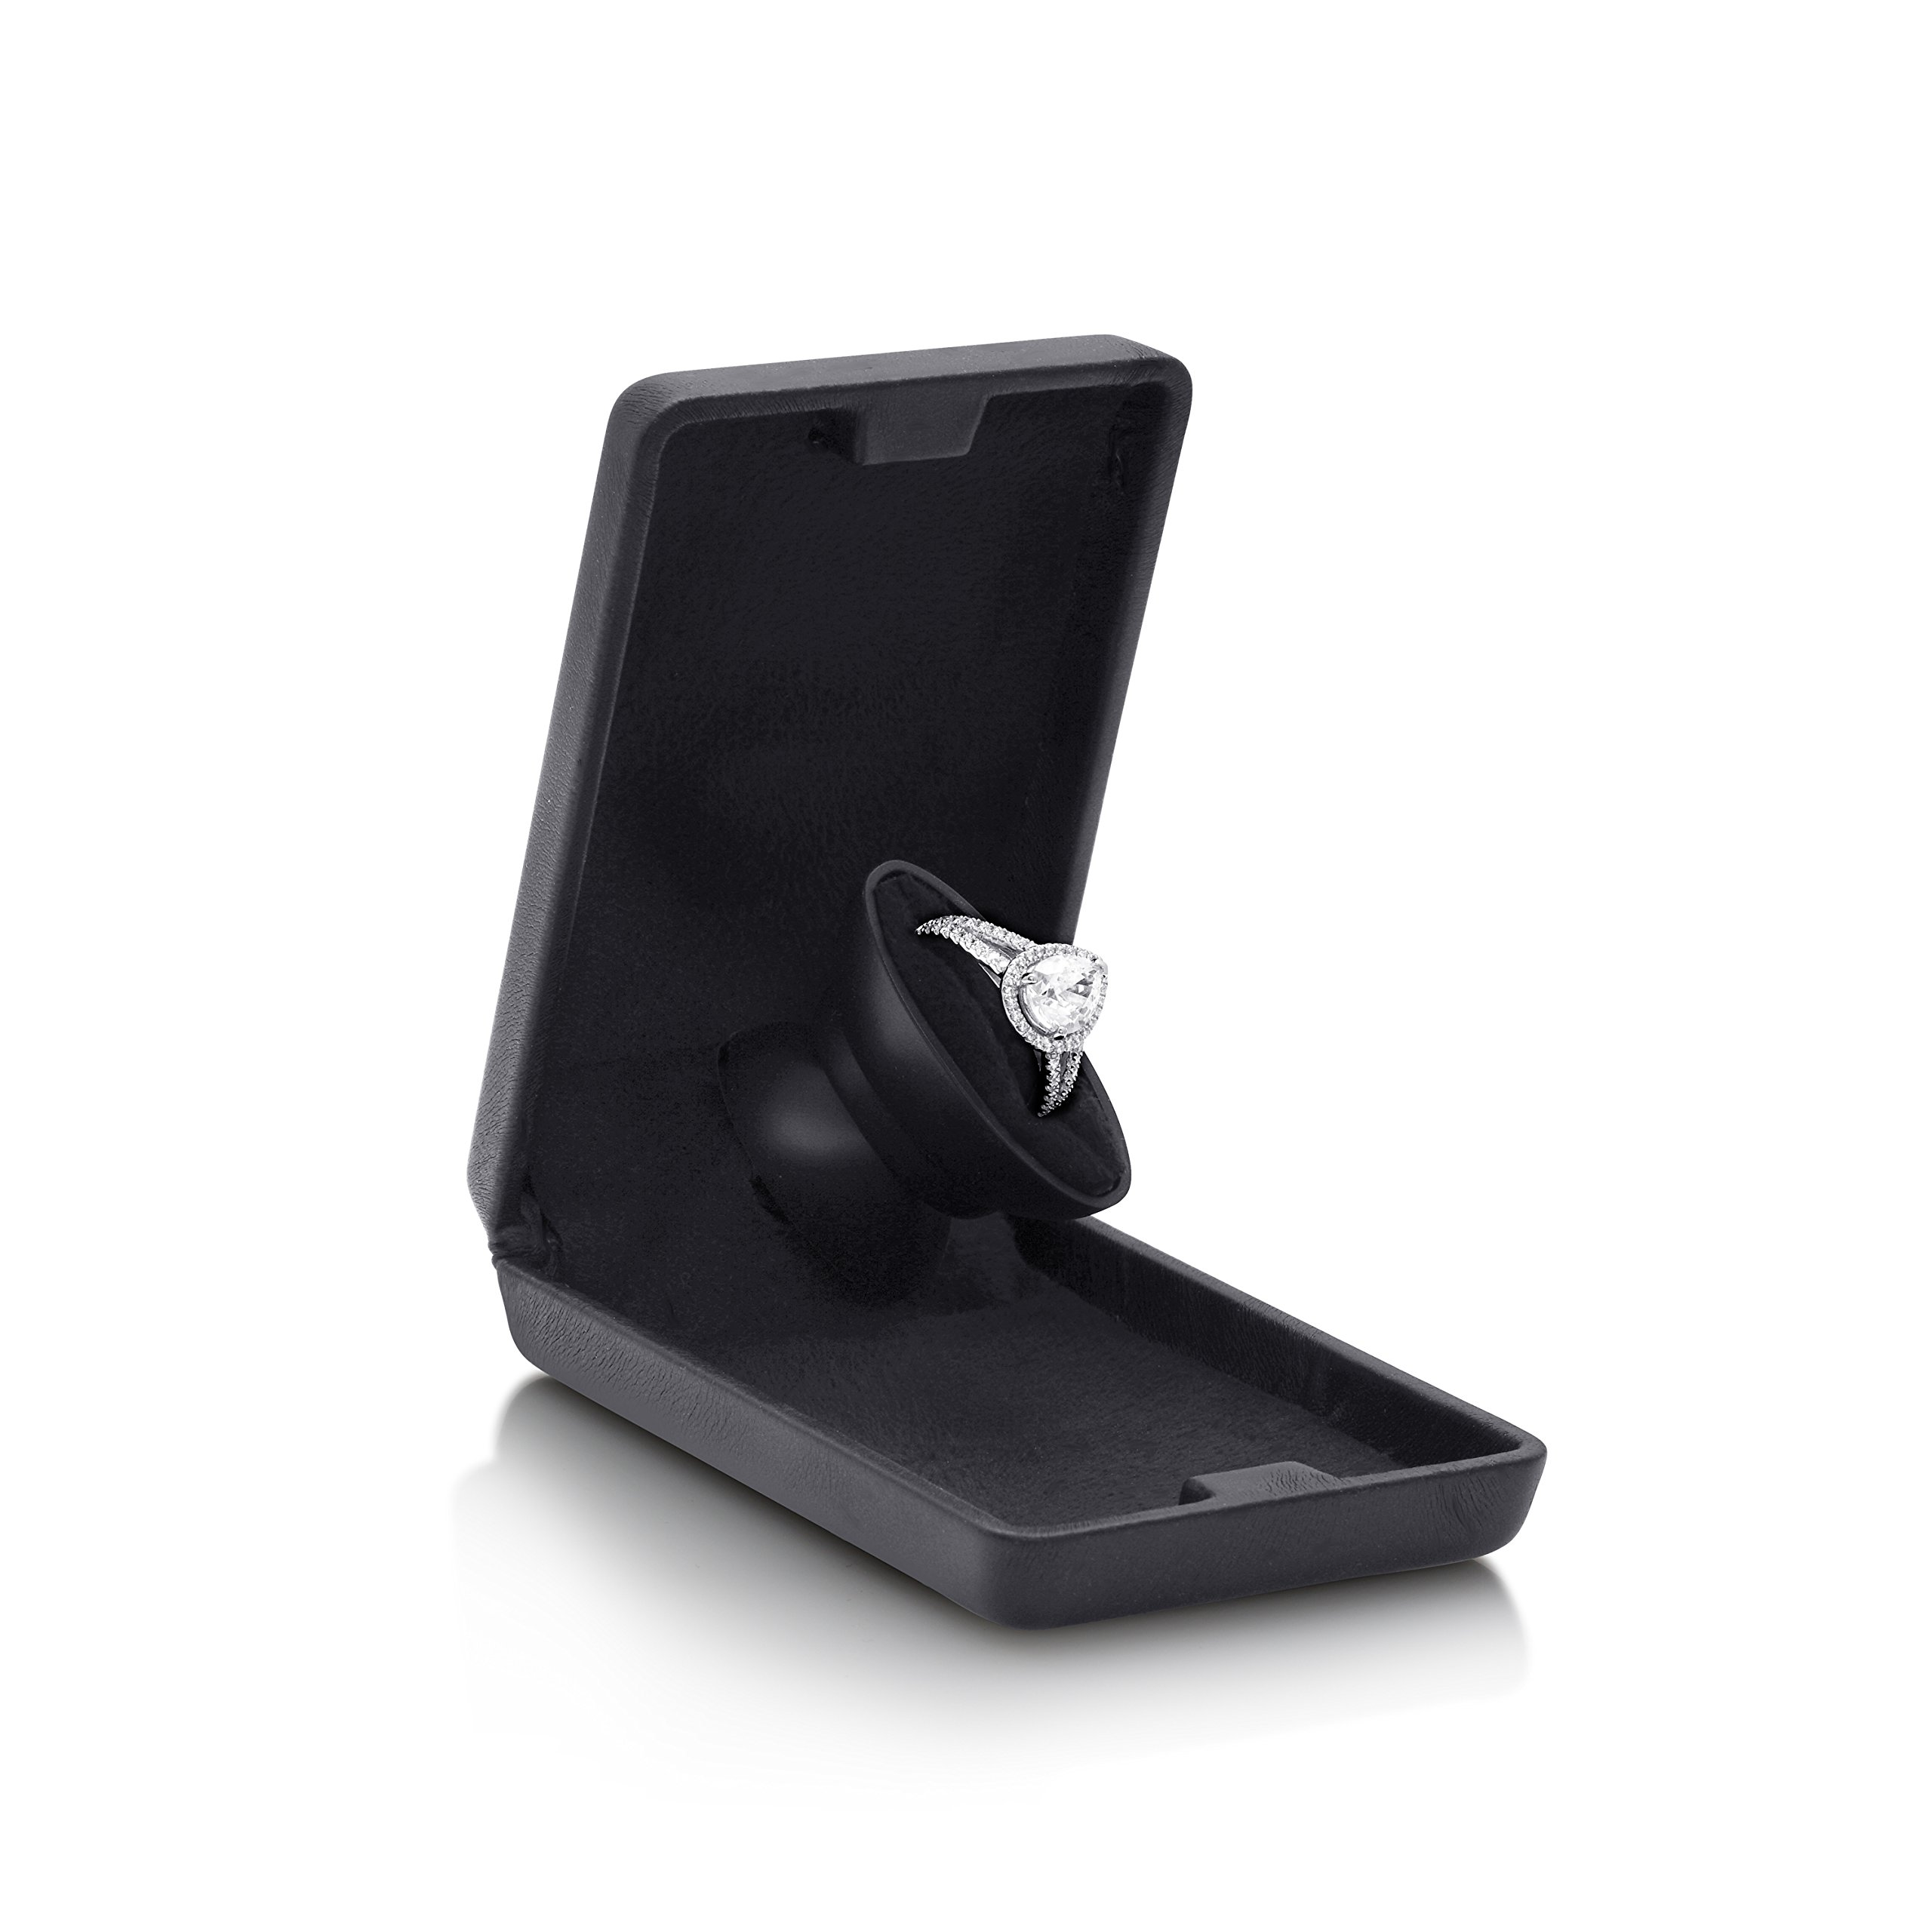 Noble Flat and Slim Pop-the-Question Jewelry Engagement Ring Box with Secret Surprise Elements (Deep Charcoal Black) by Noble (Image #3)